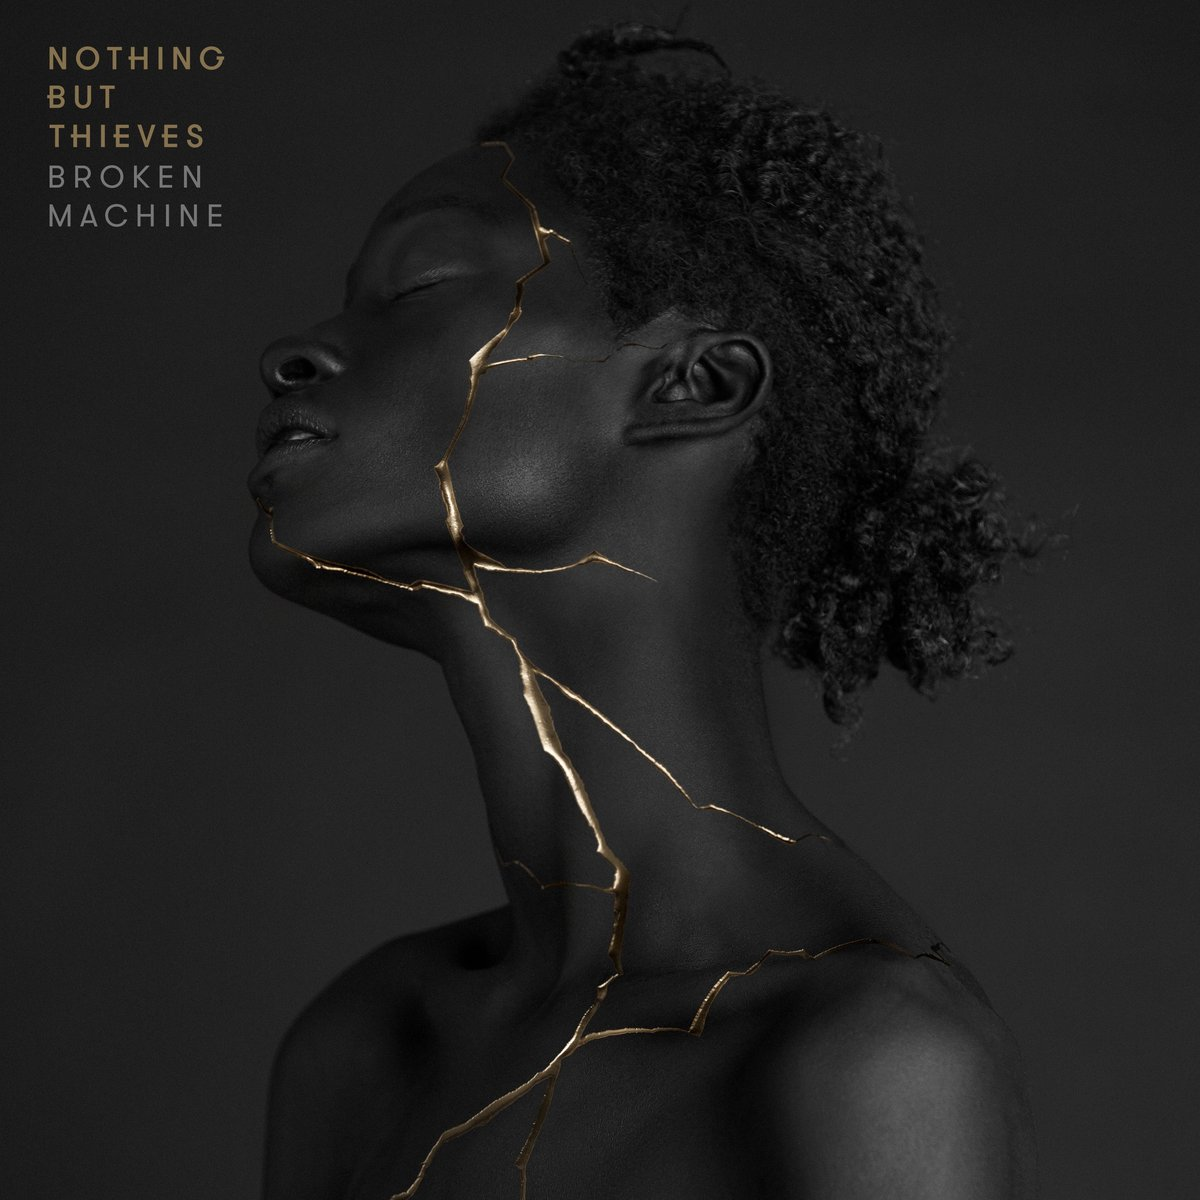 Nothing But Thieves – Broken Machine